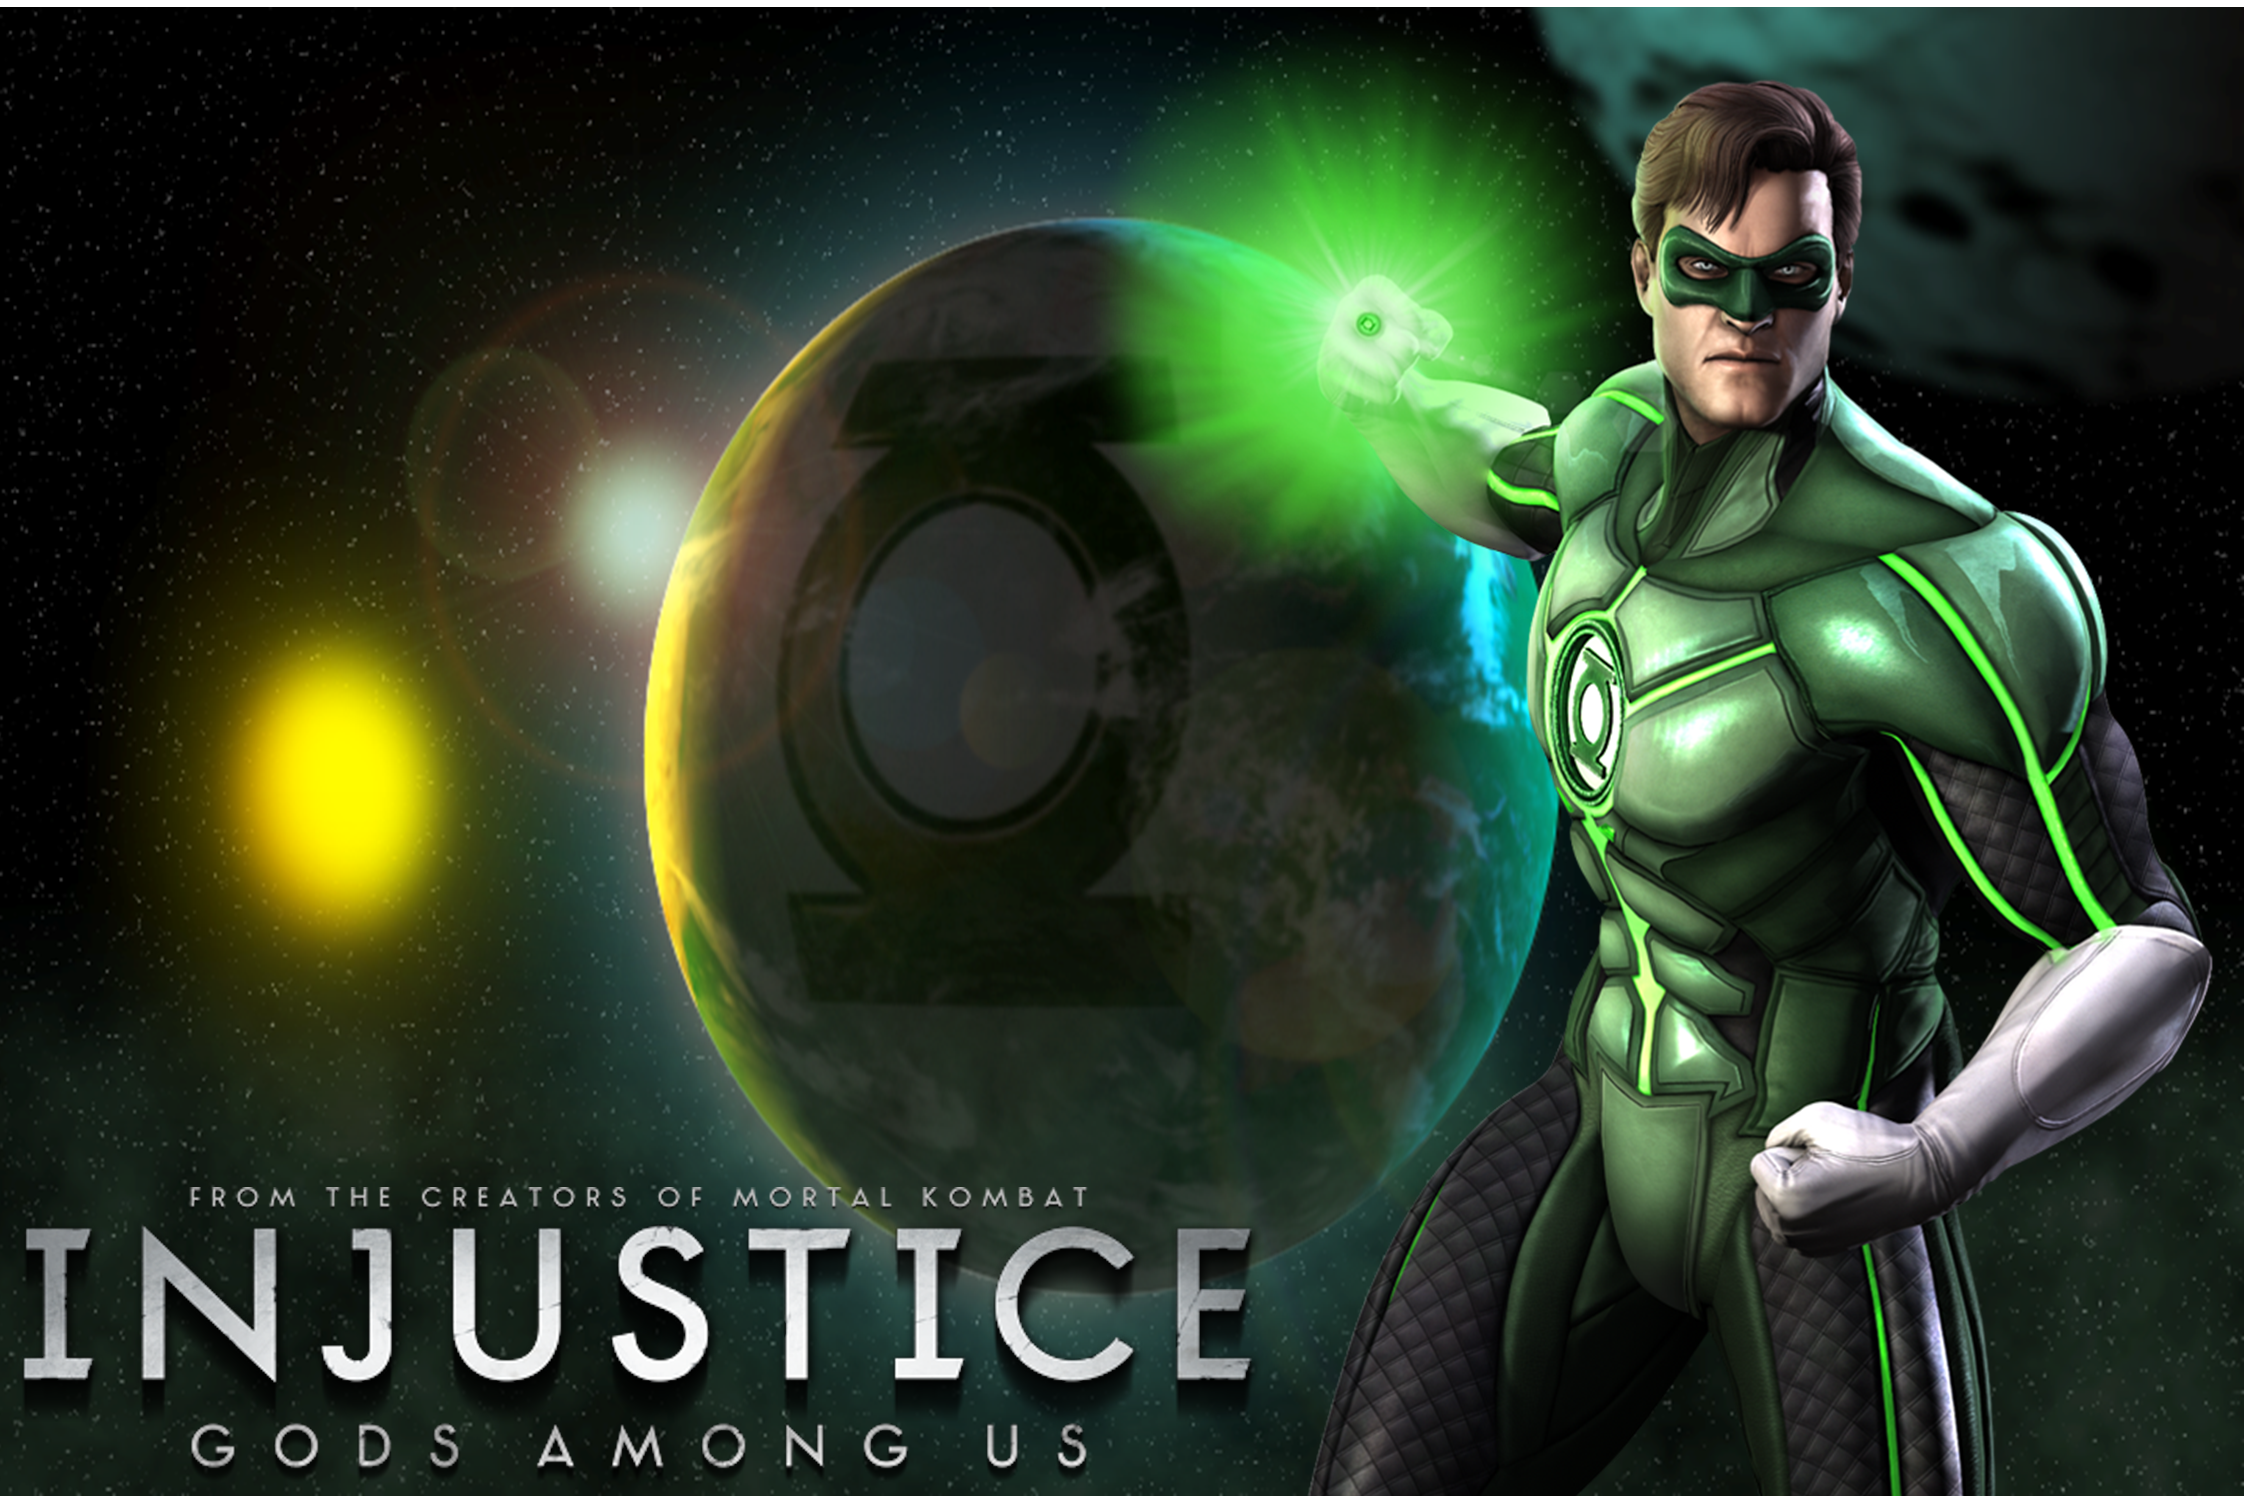 Injustice Green Lantern Wallpaper by NerdyOwl299 2244x1496